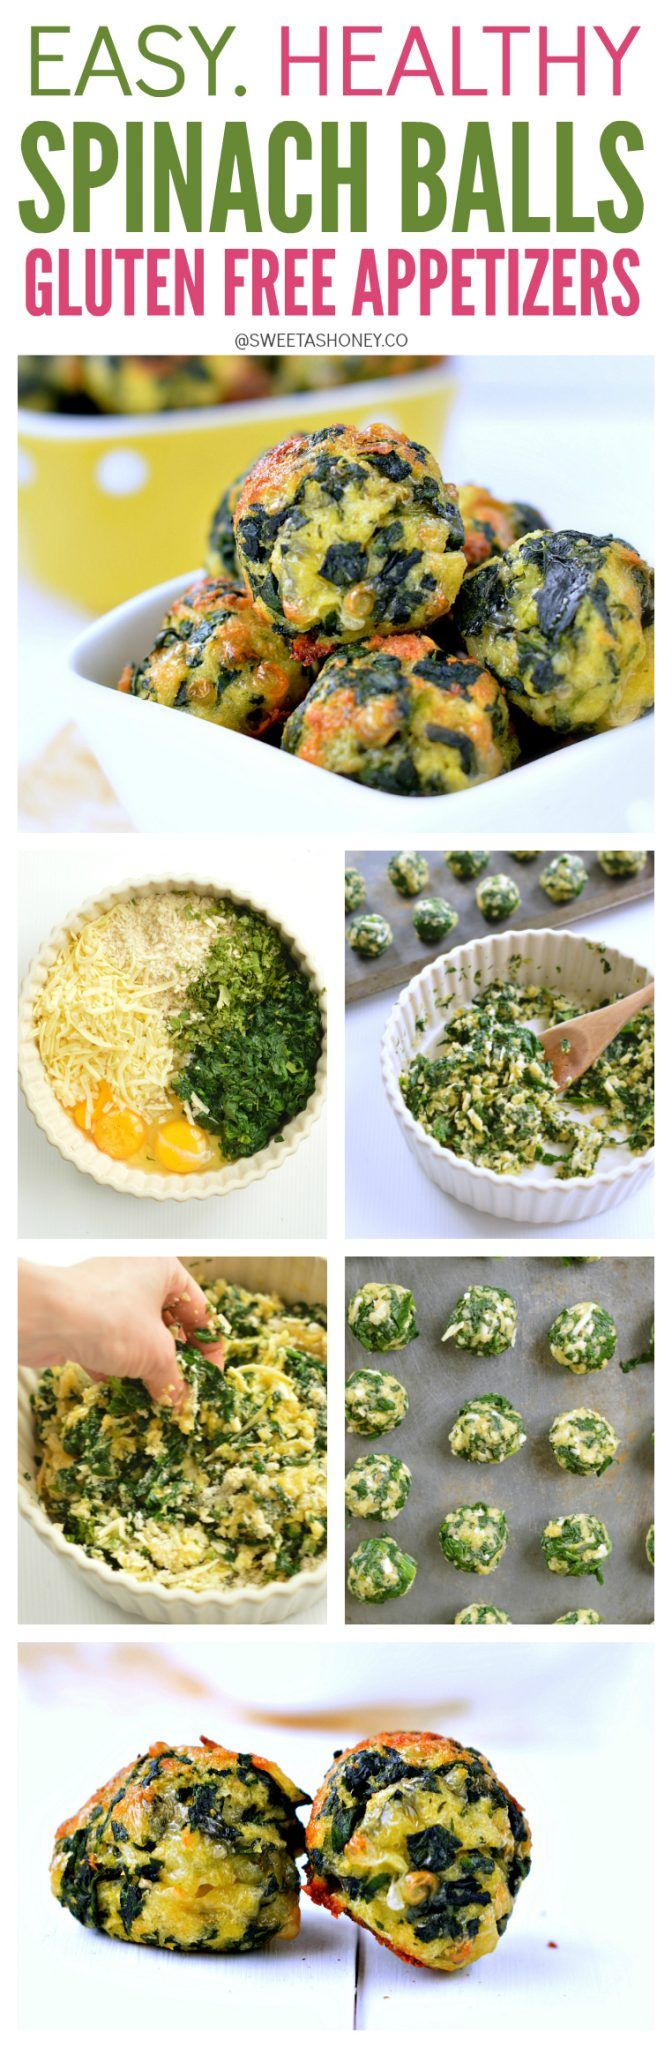 A great party appetizer. Healthy Spinach Balls recipe. Gluten free party food that everyone love. Clean eating approved!